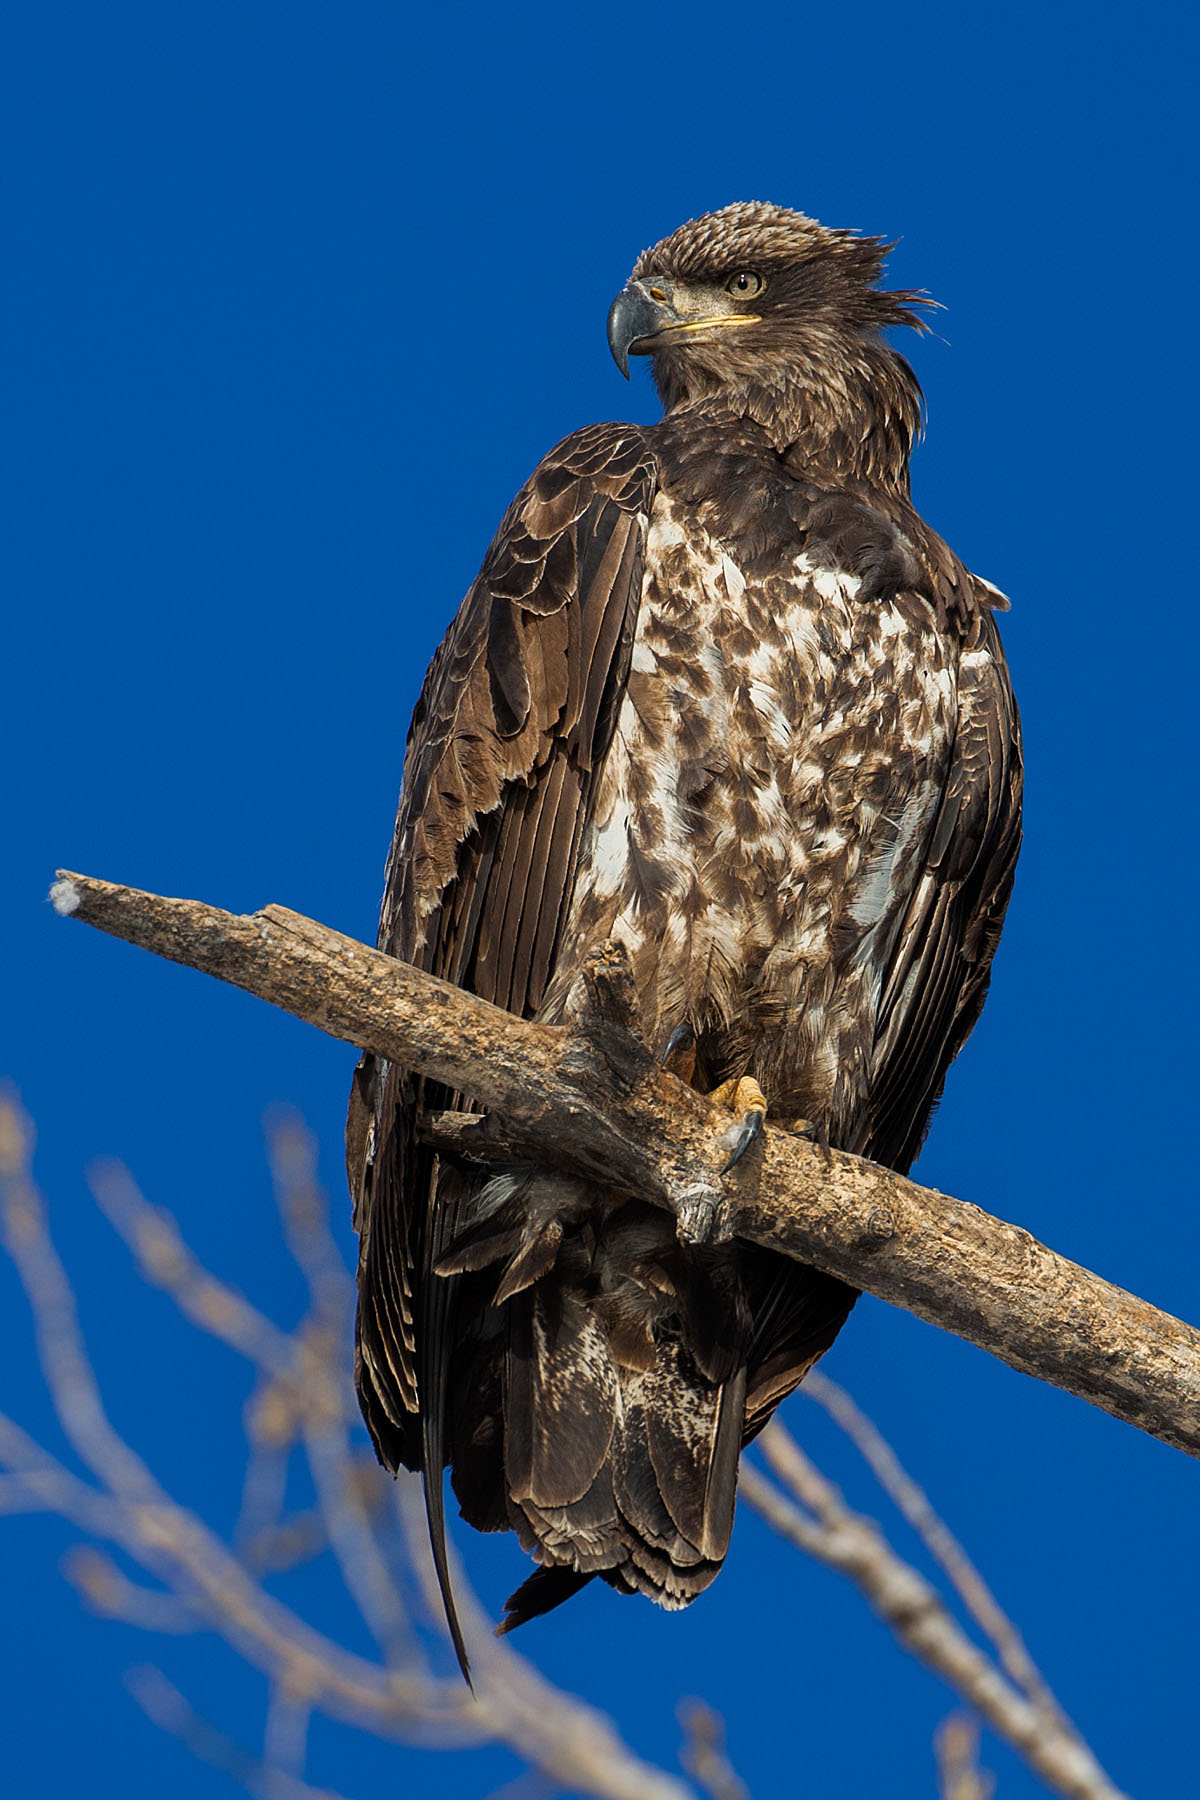 Juvenile bald eagle, Ft. Randall dam, South Dakota, February 2008.  Click for next photo.